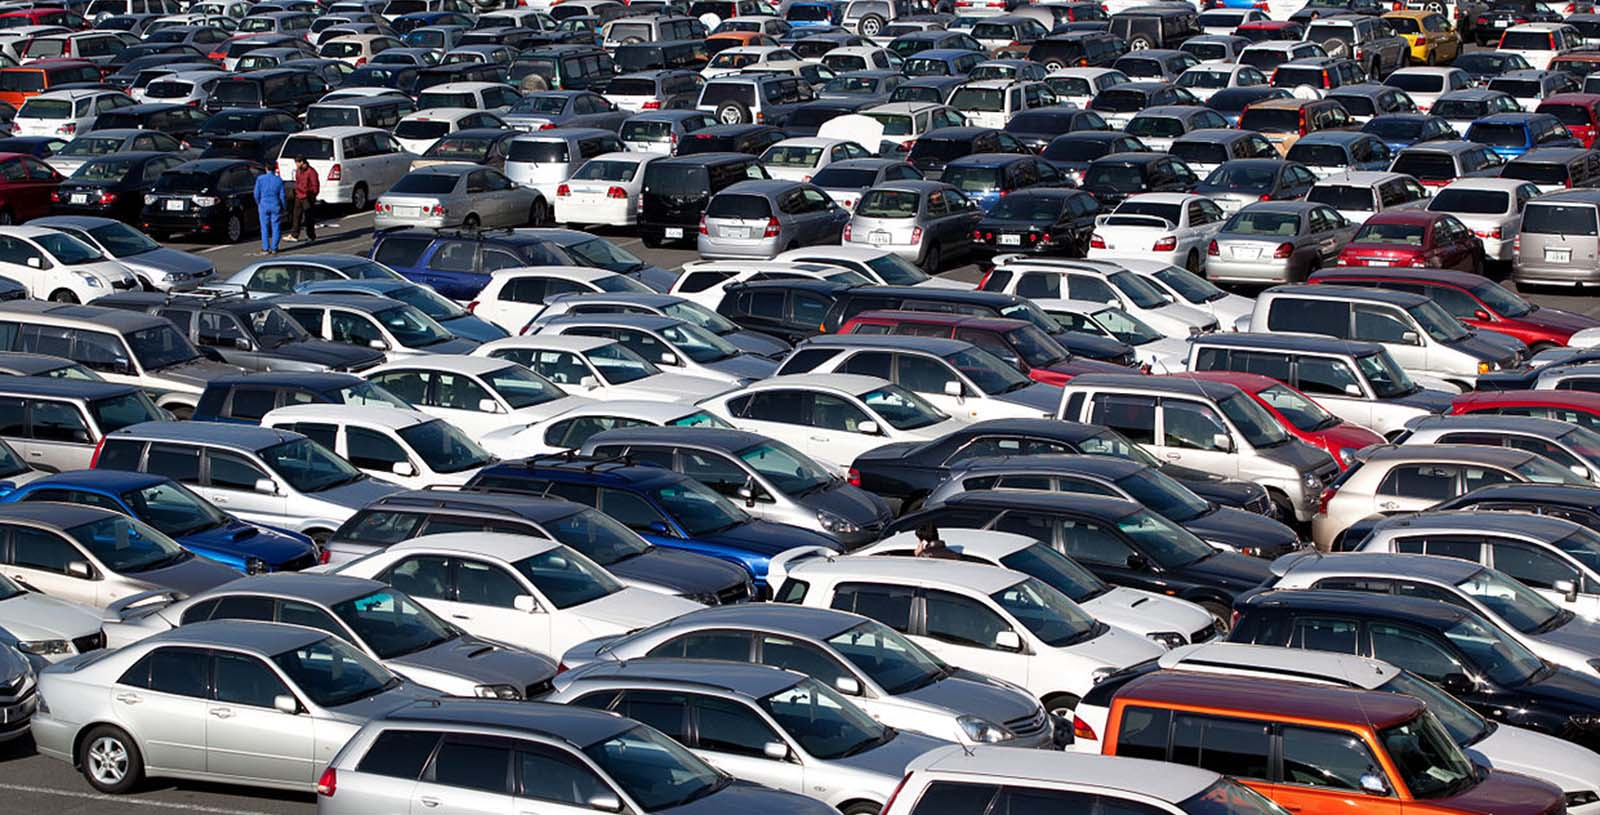 changing texas car sale laws would hurt consumers